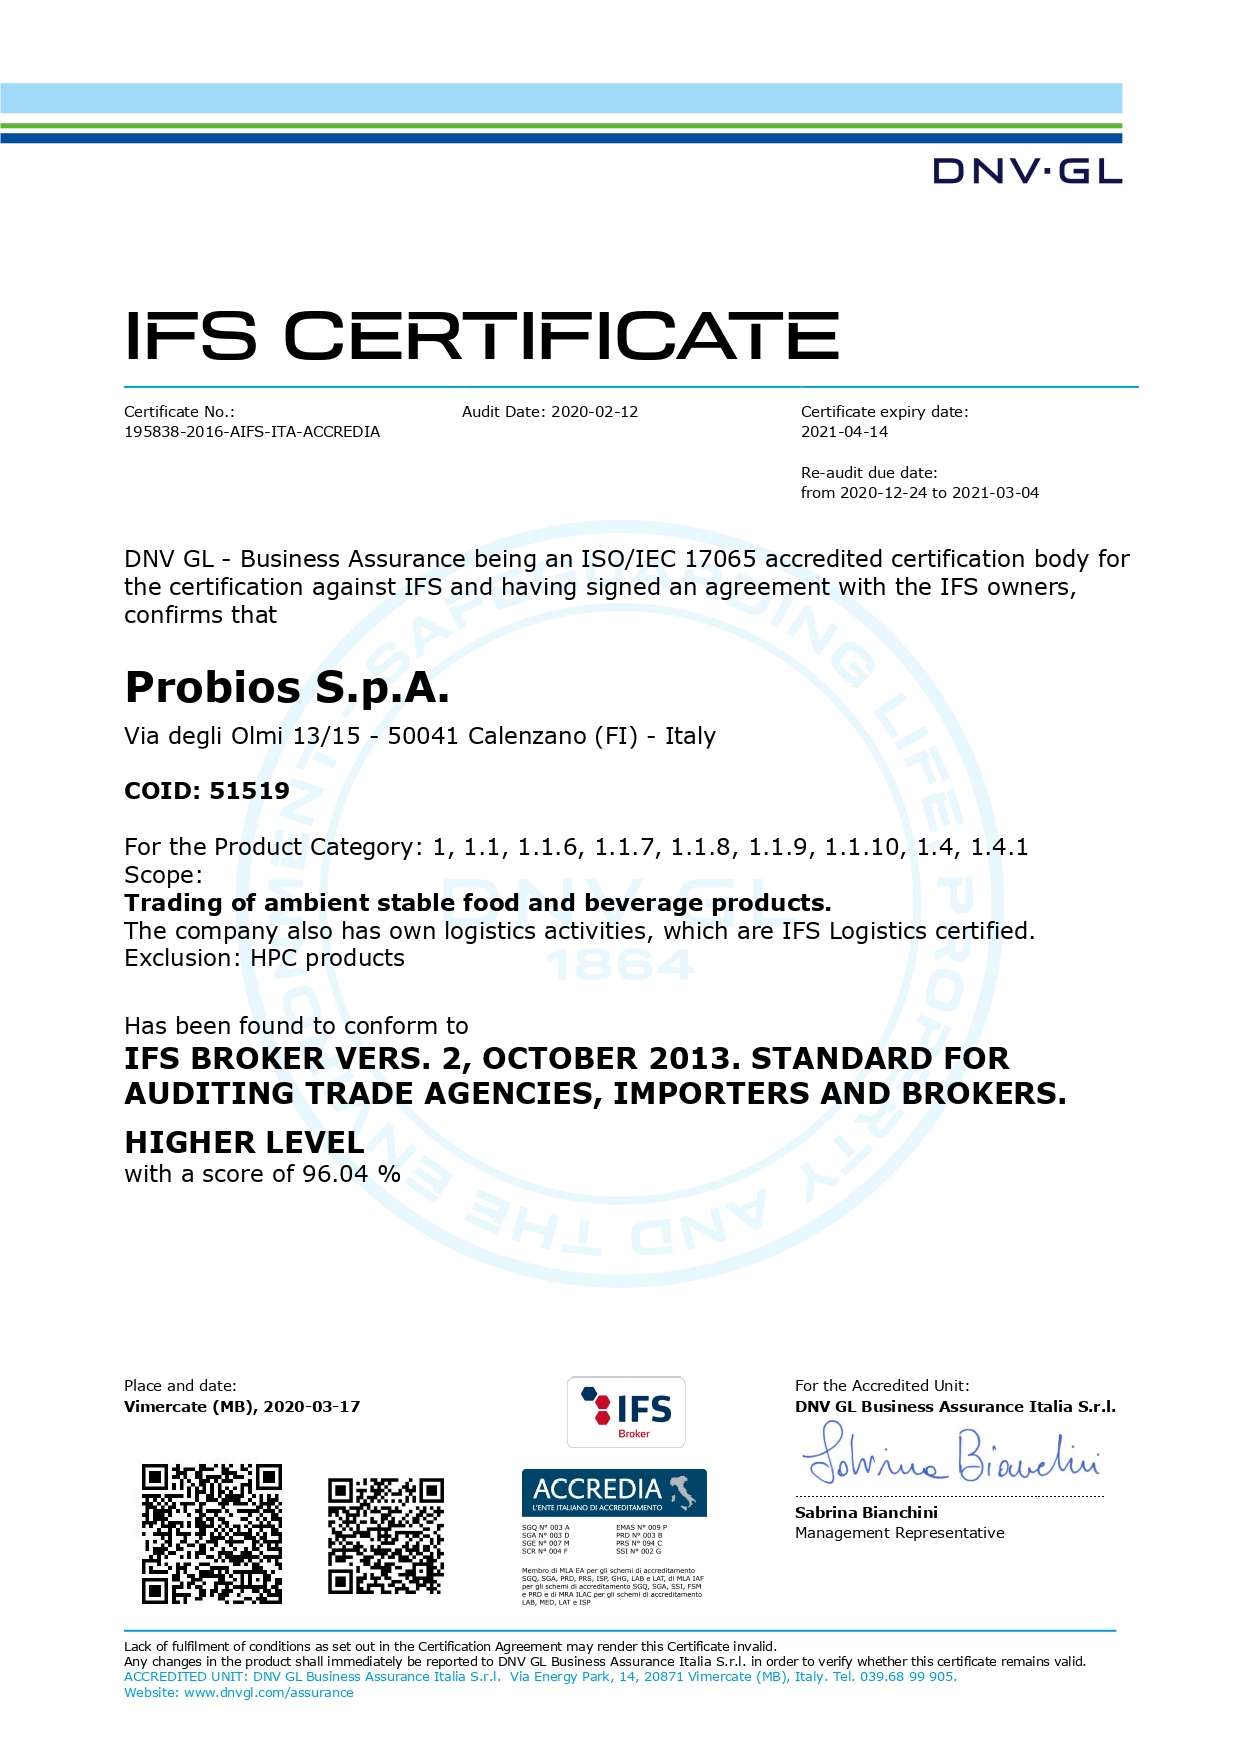 IFS Brokers – Probios